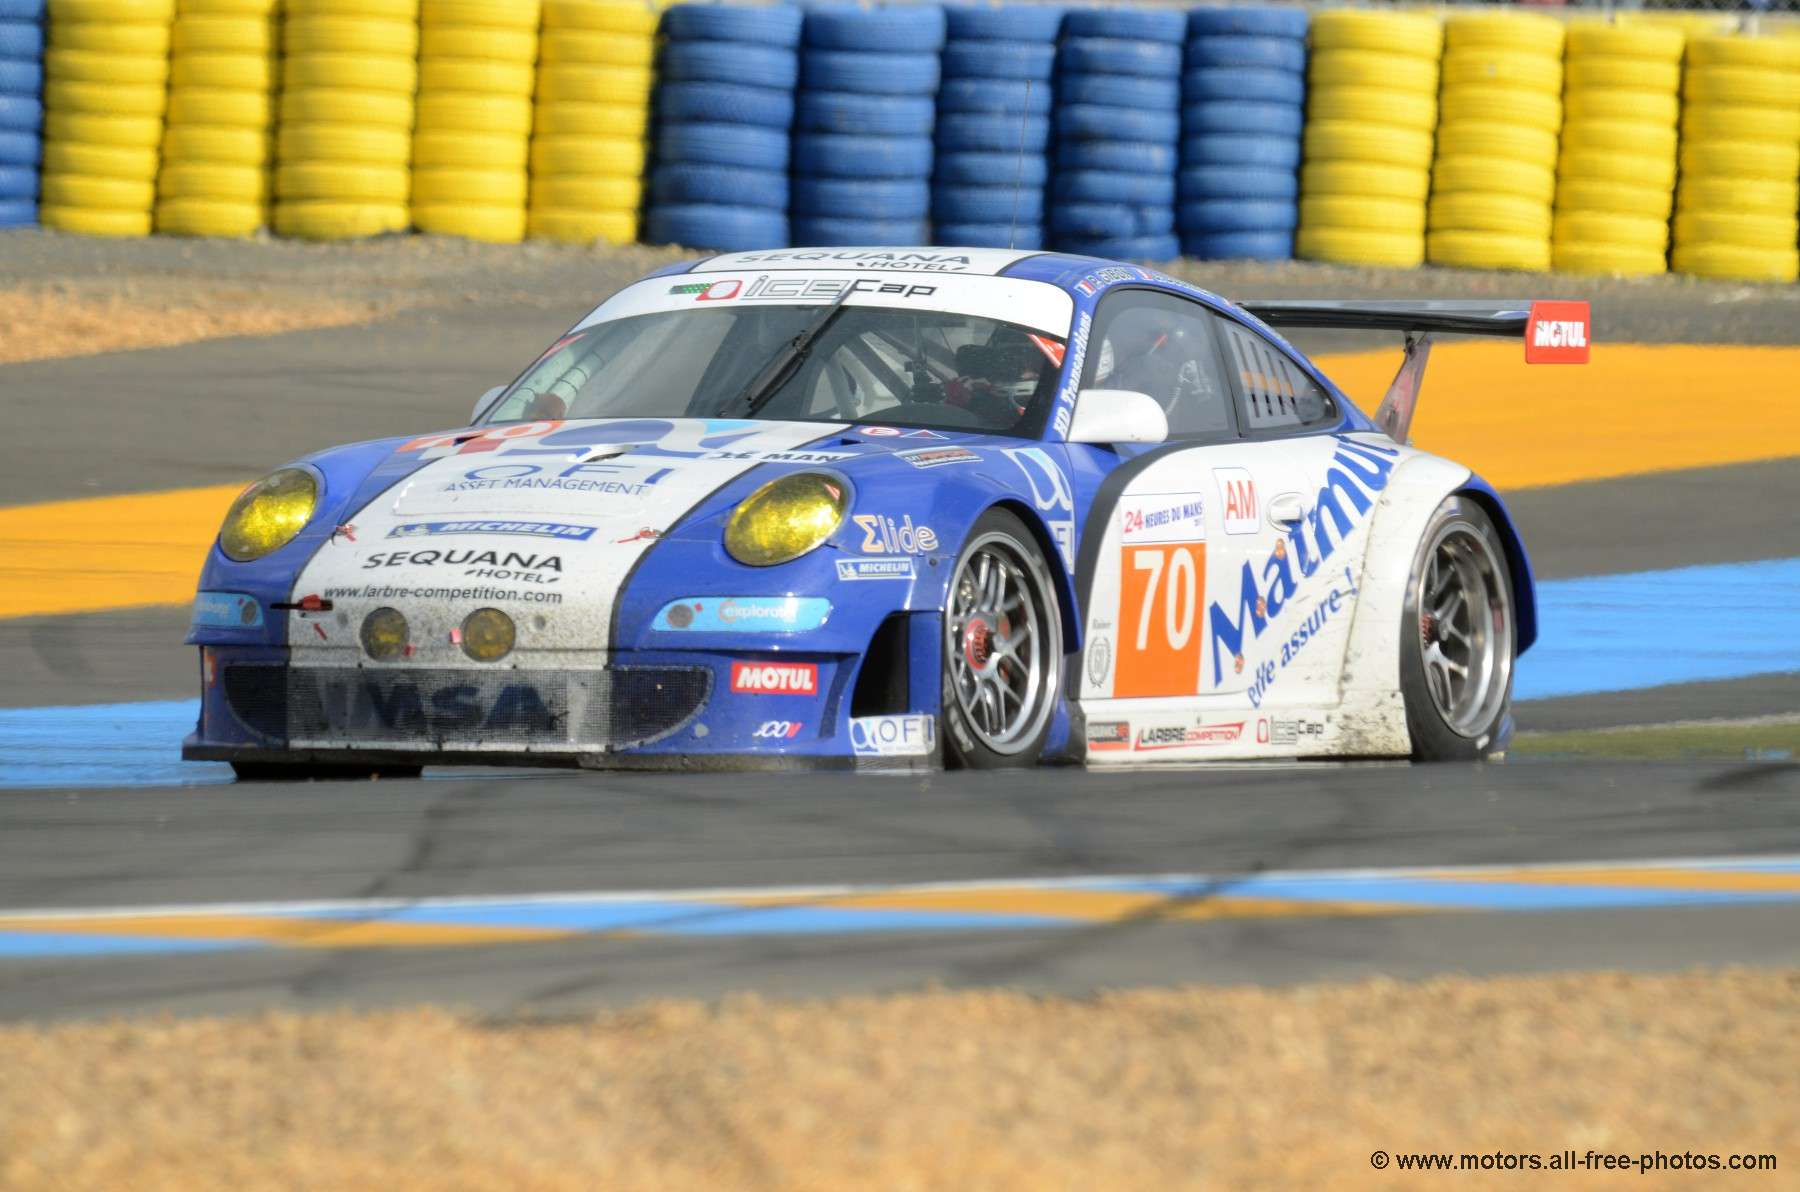 Porsche 997 GT3 RSR - Team Larbre Competition